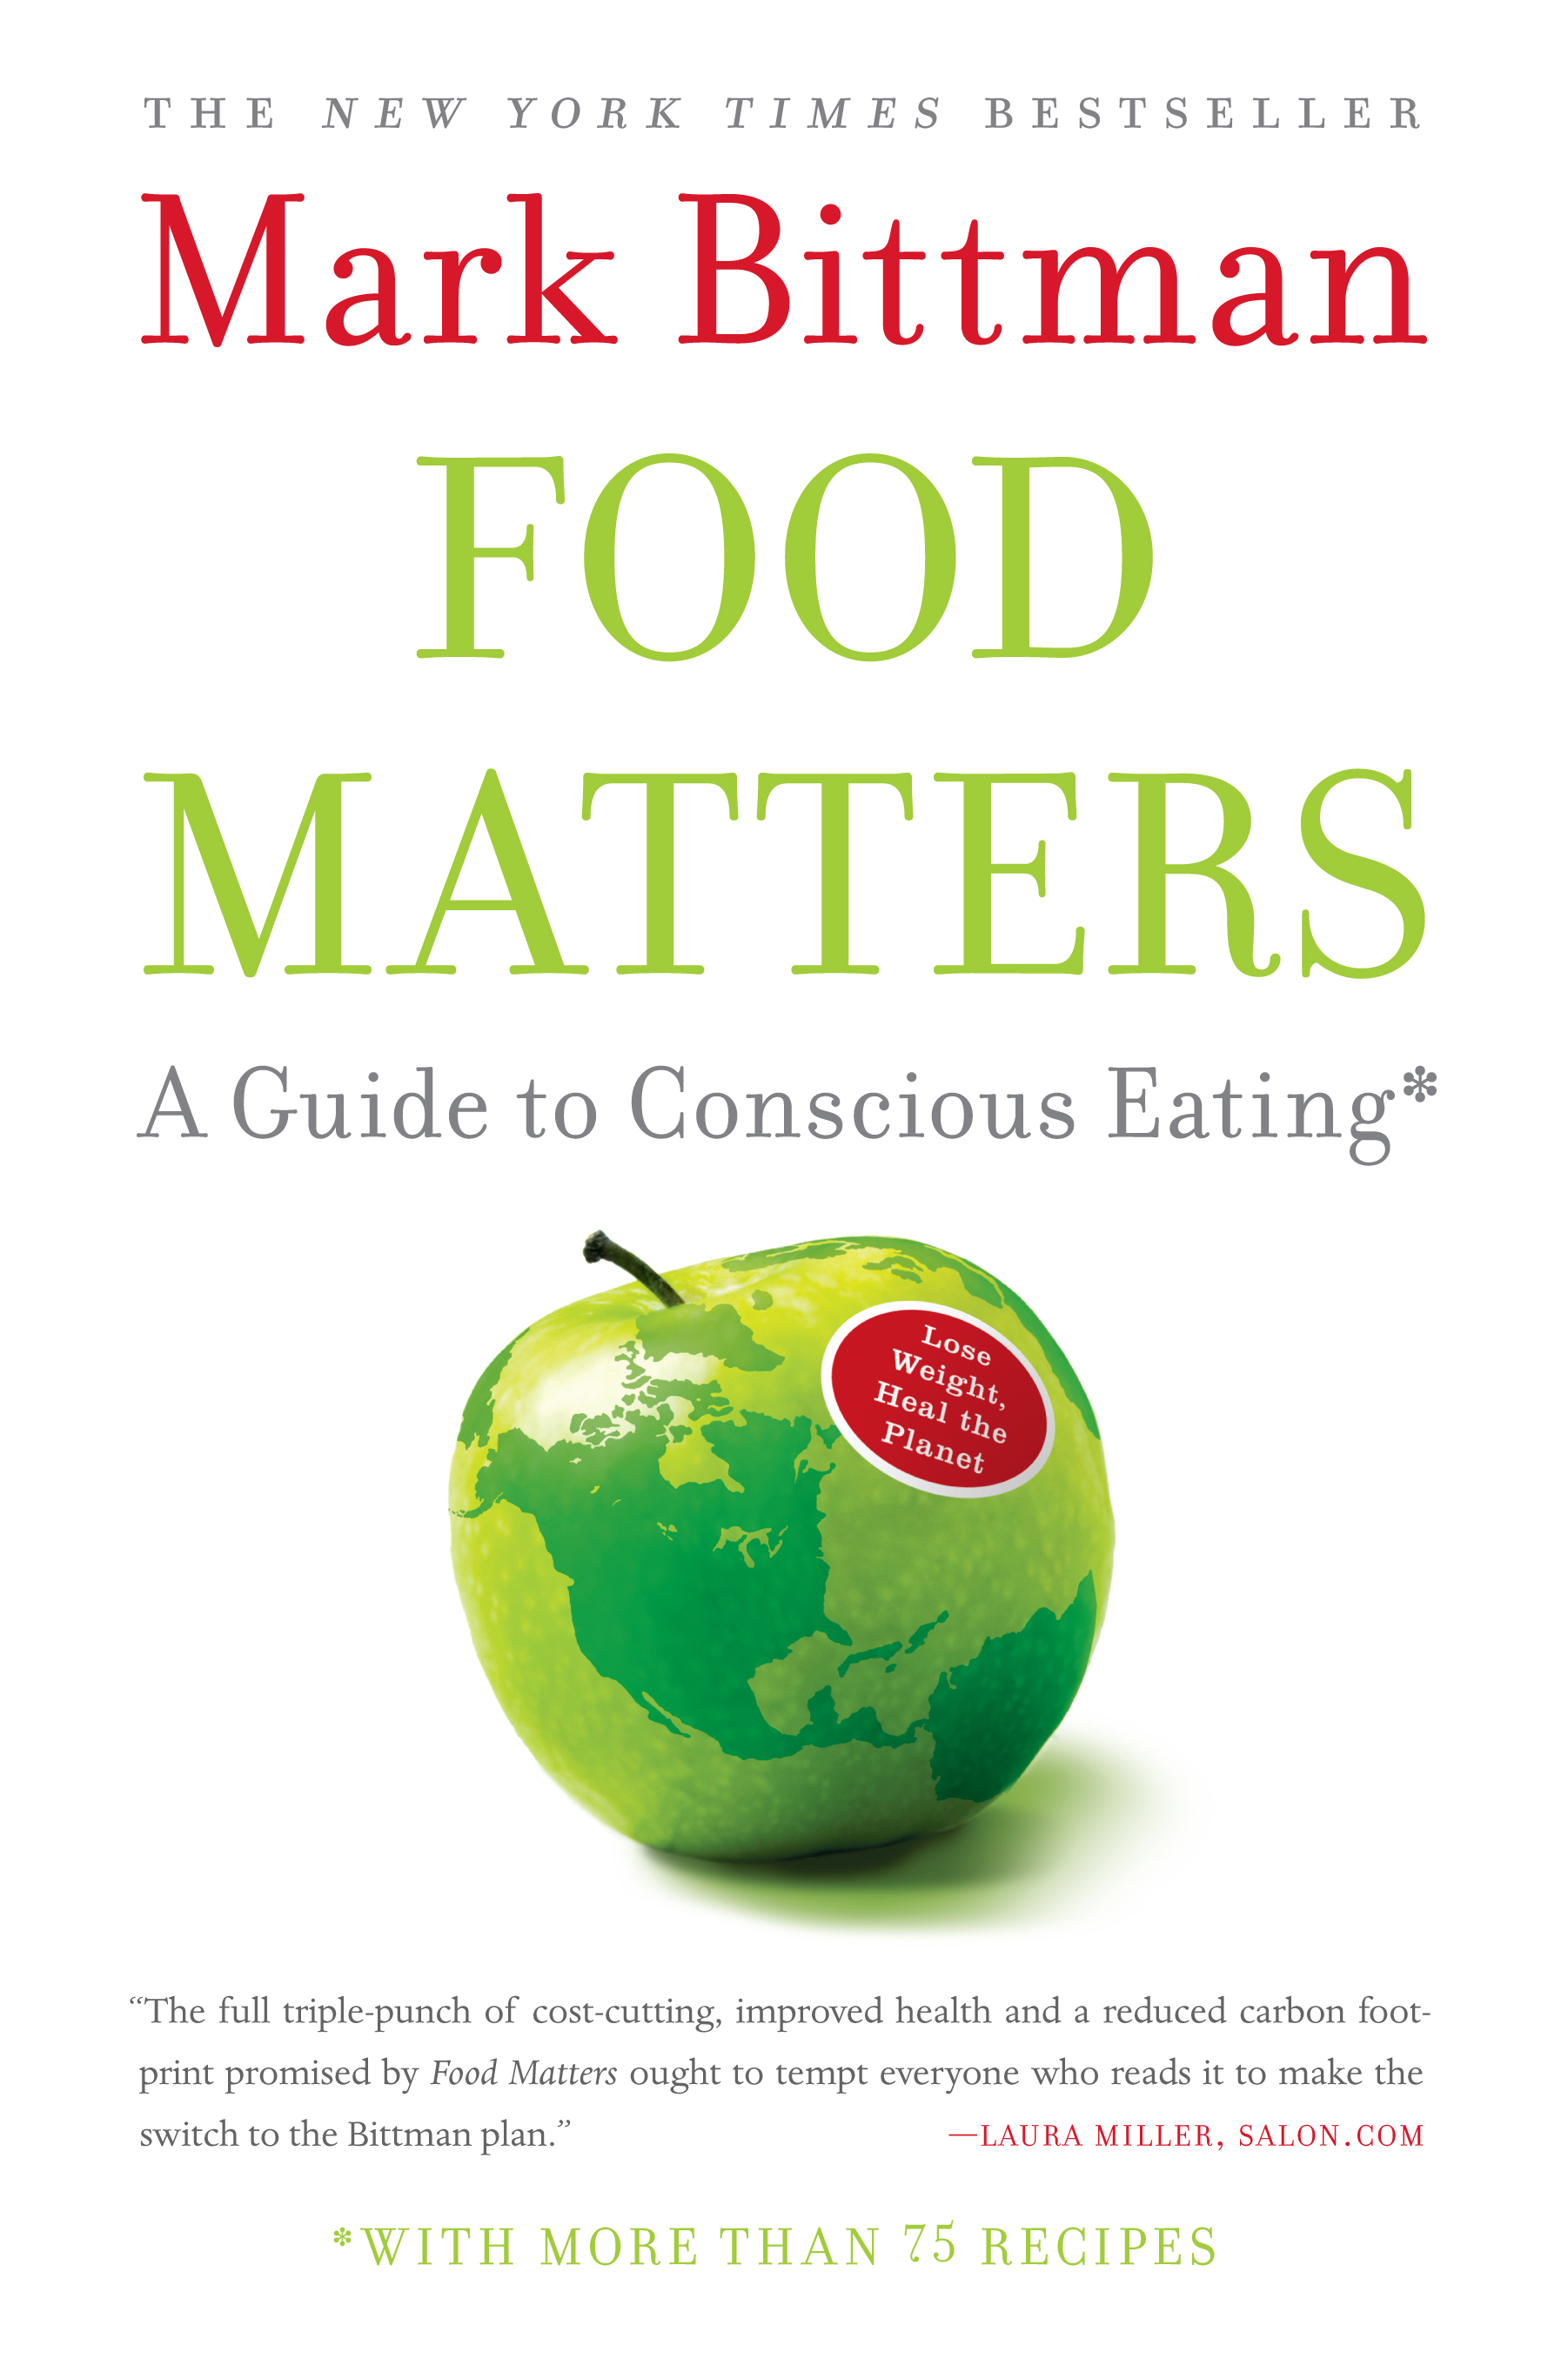 Food matters book by mark bittman official publisher page a guide to conscious eating with more than 75 recipes food matters forumfinder Gallery